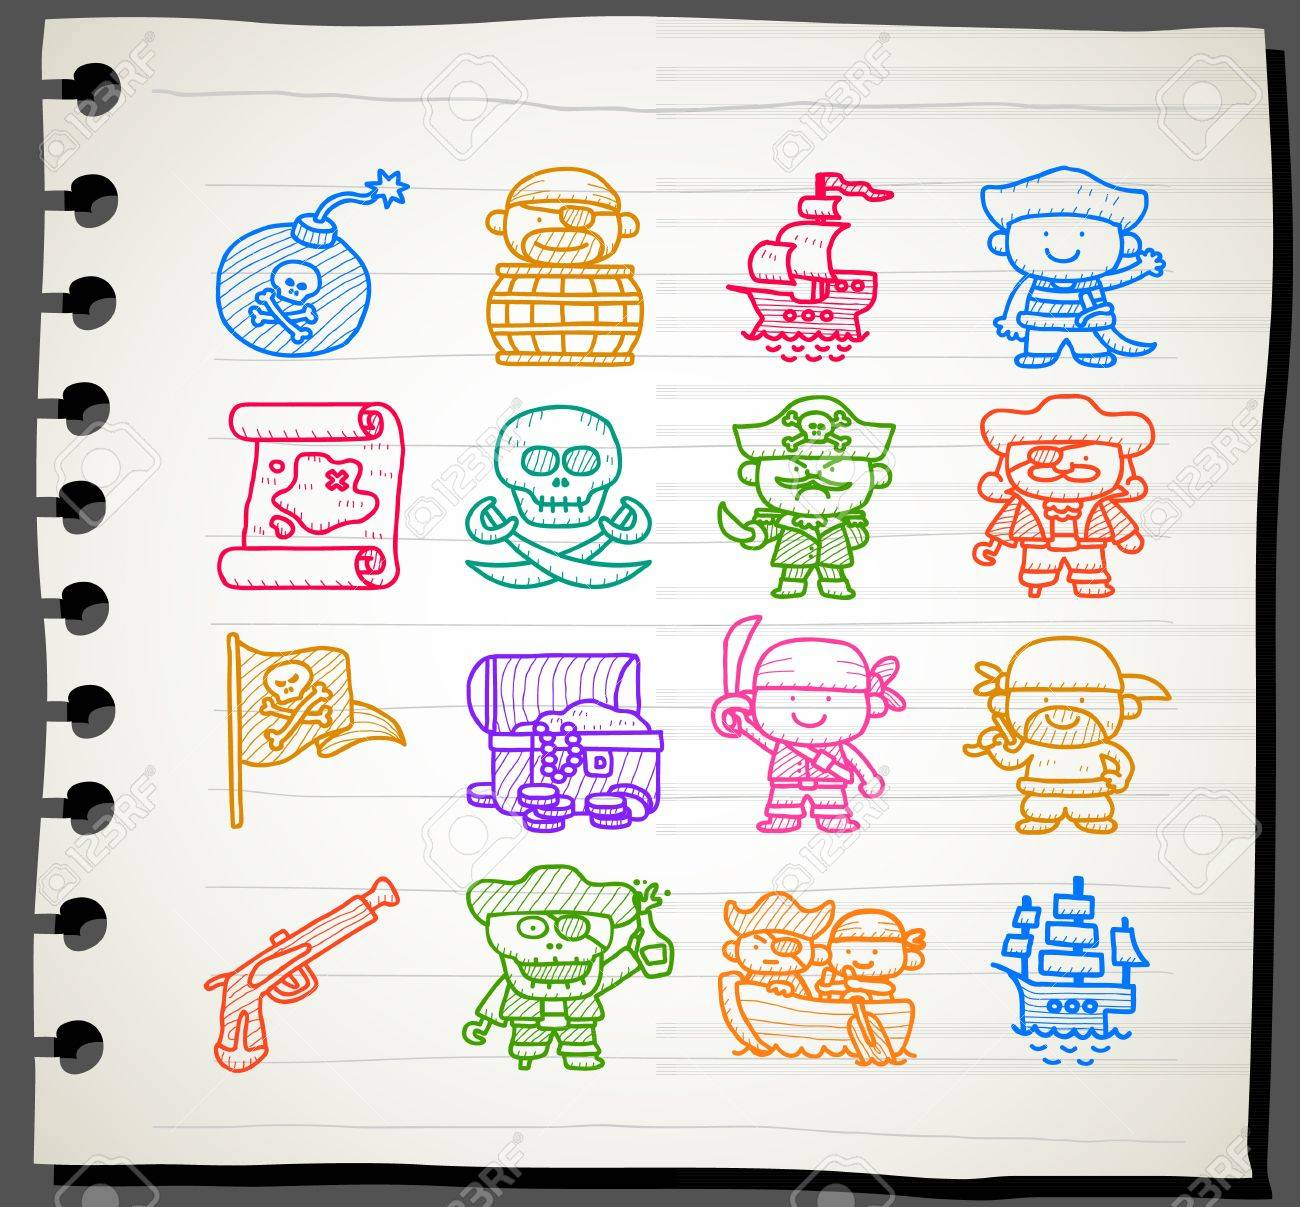 Sketchbook series,Pirate icon set Stock Vector - 13451382